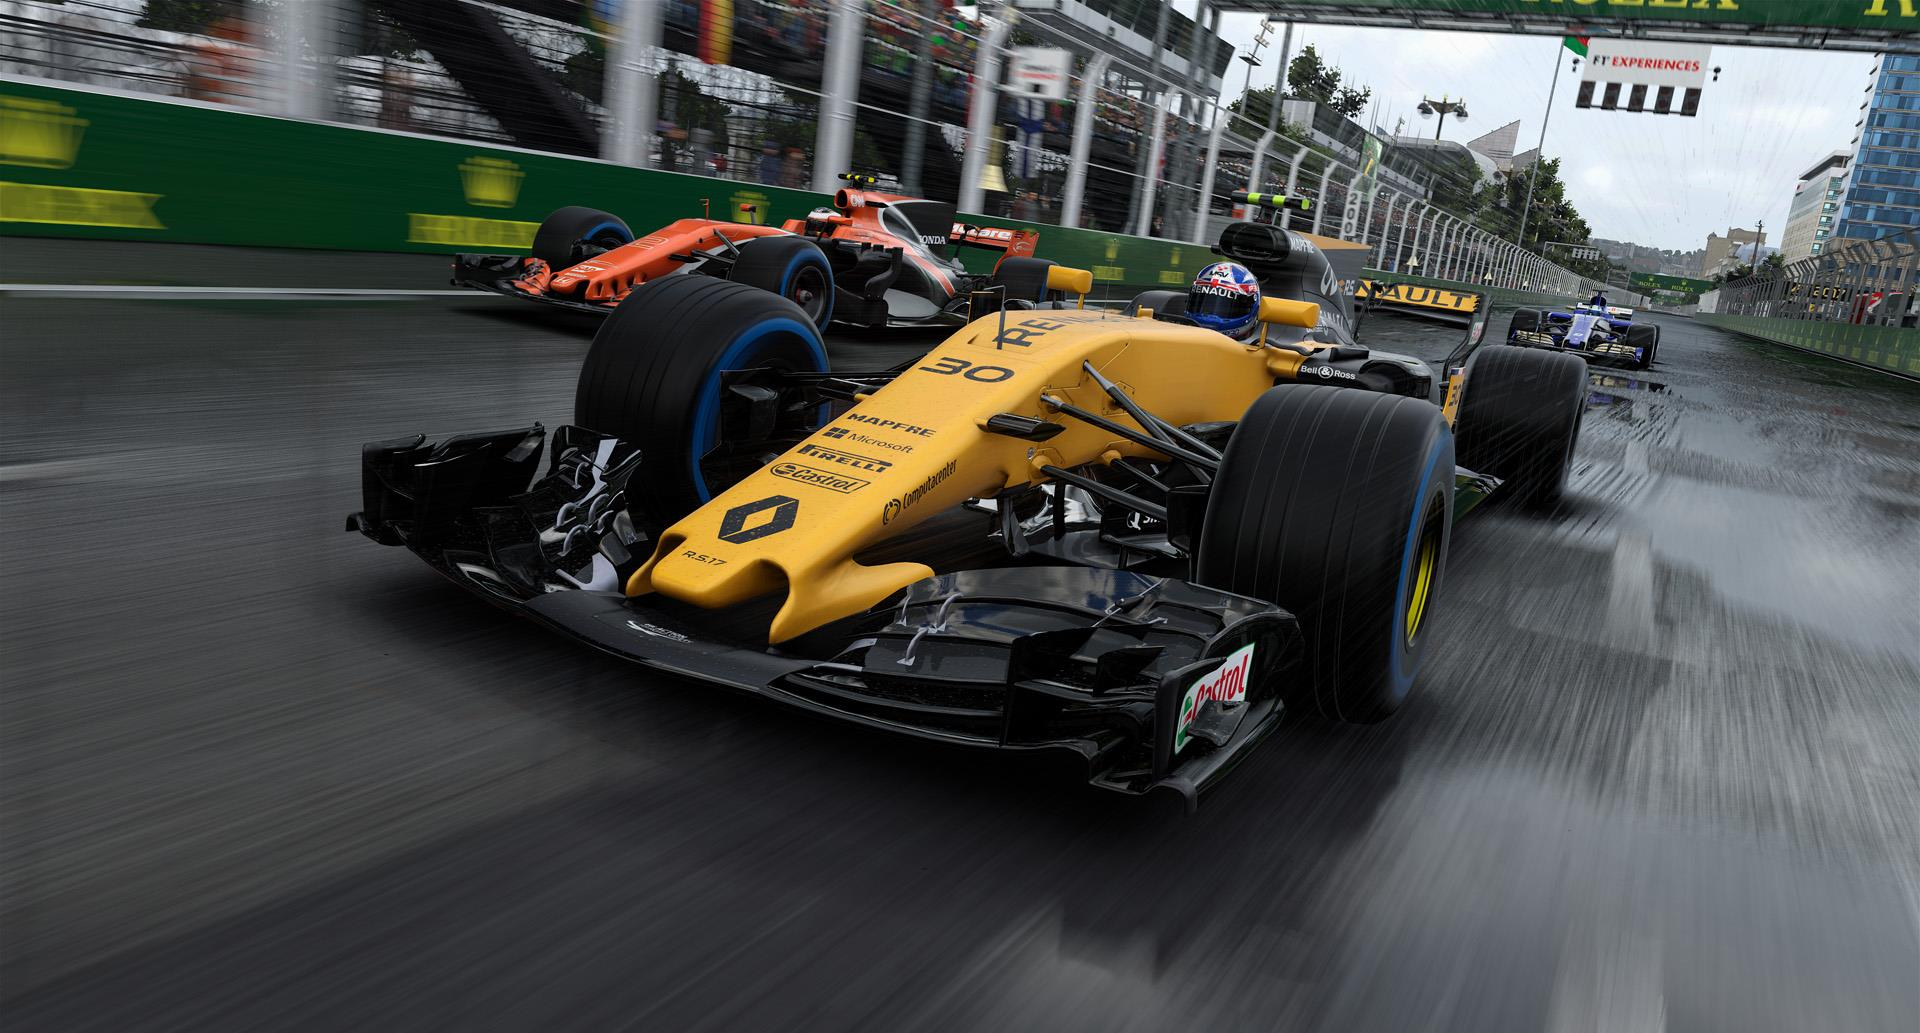 F1 Esports Series to switch to F1 2018 during Pro Championships